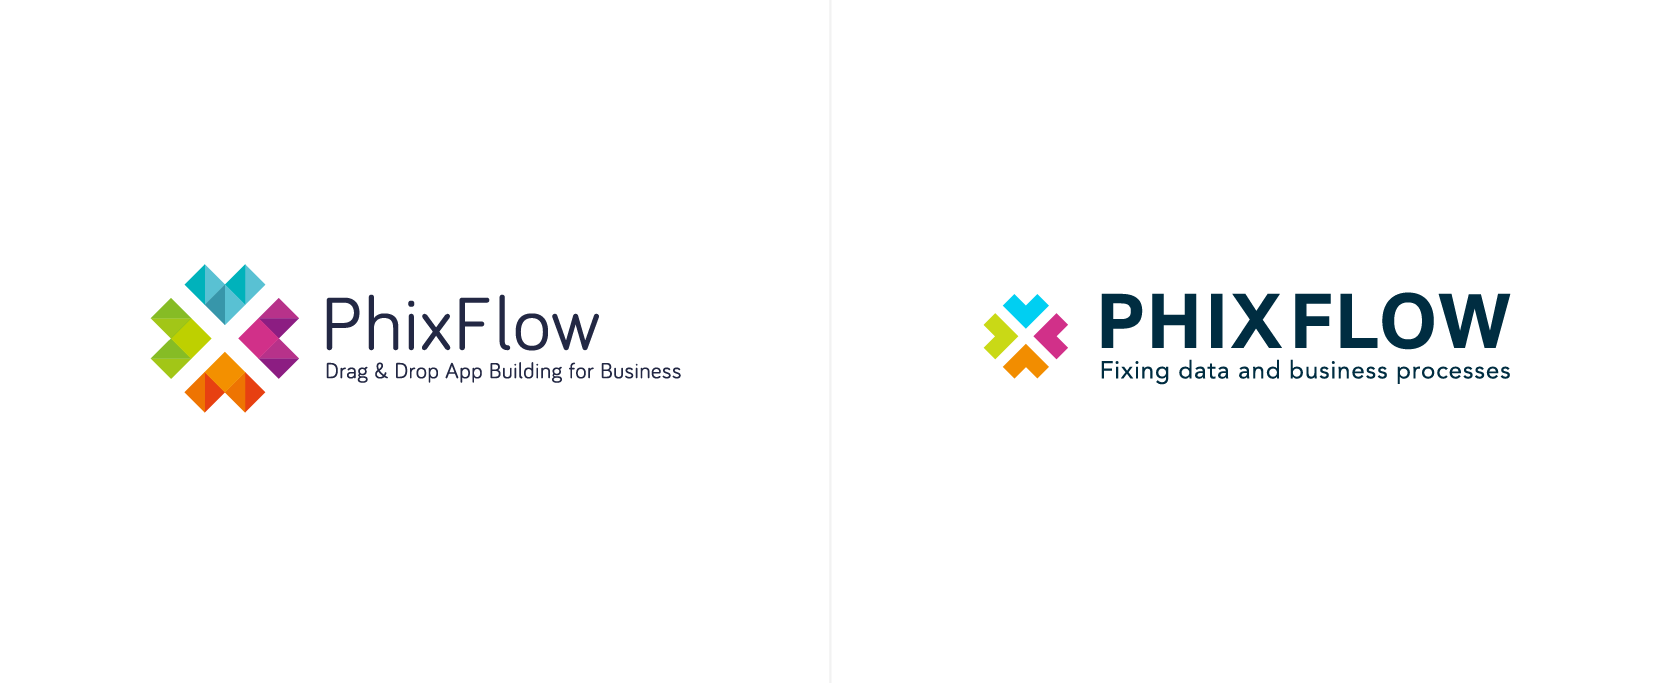 PhixFlow brand refinement before and after, by Chiara Mensa